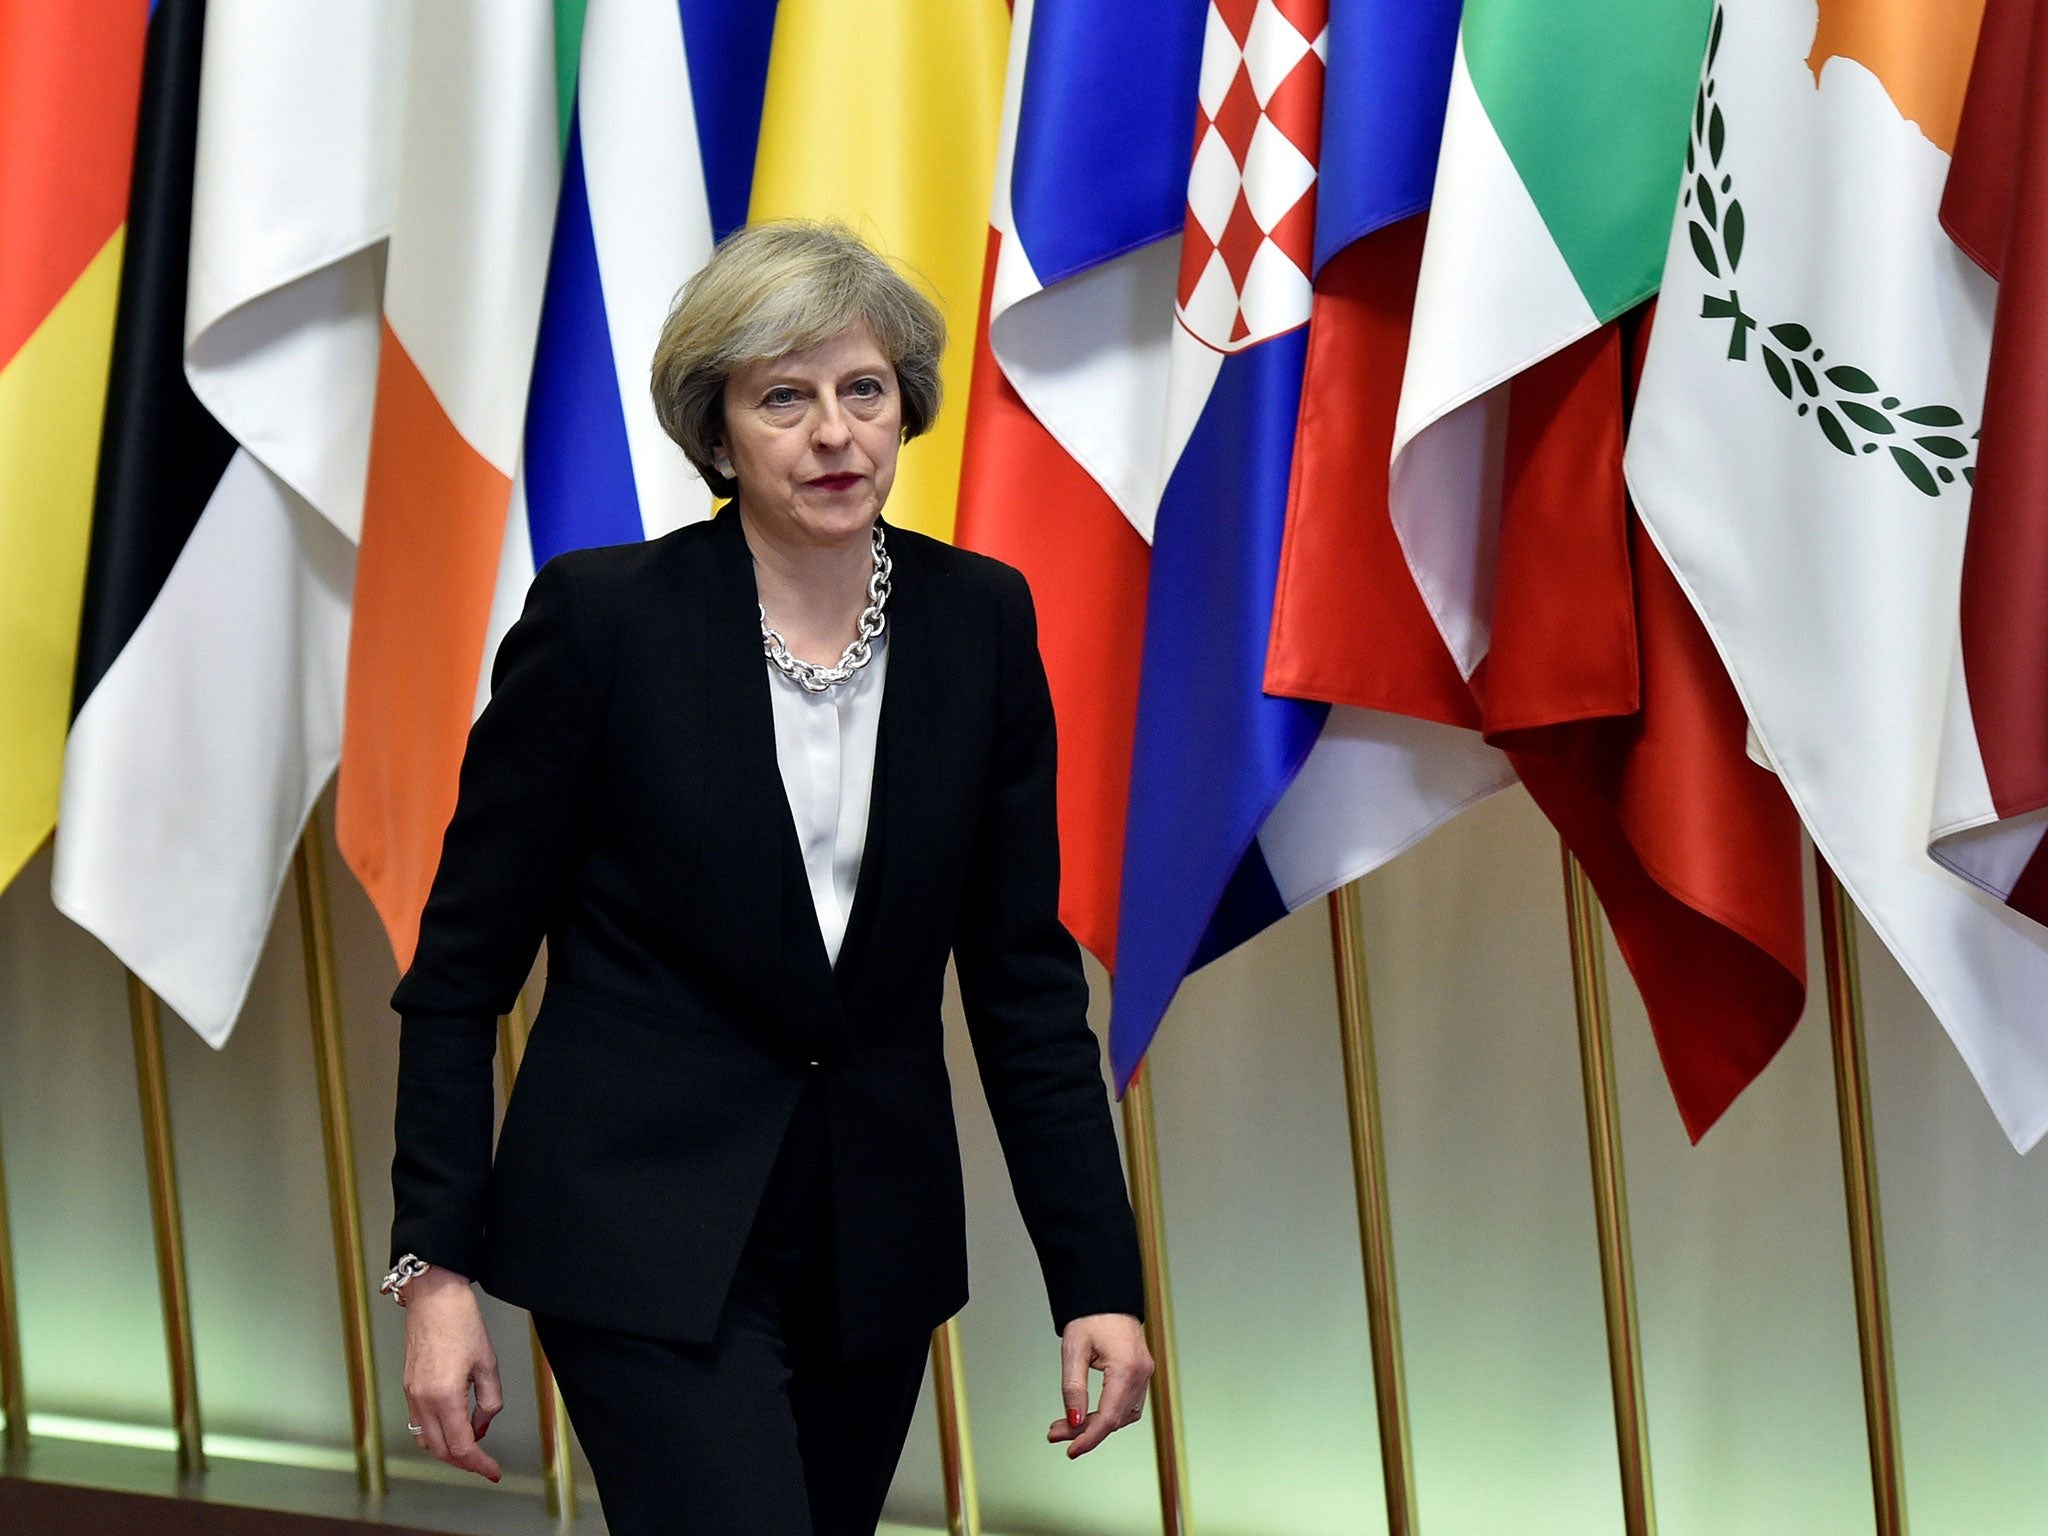 'I think I'd better leave now' Theresa May said to EU leaders when they refused to discuss Brexit